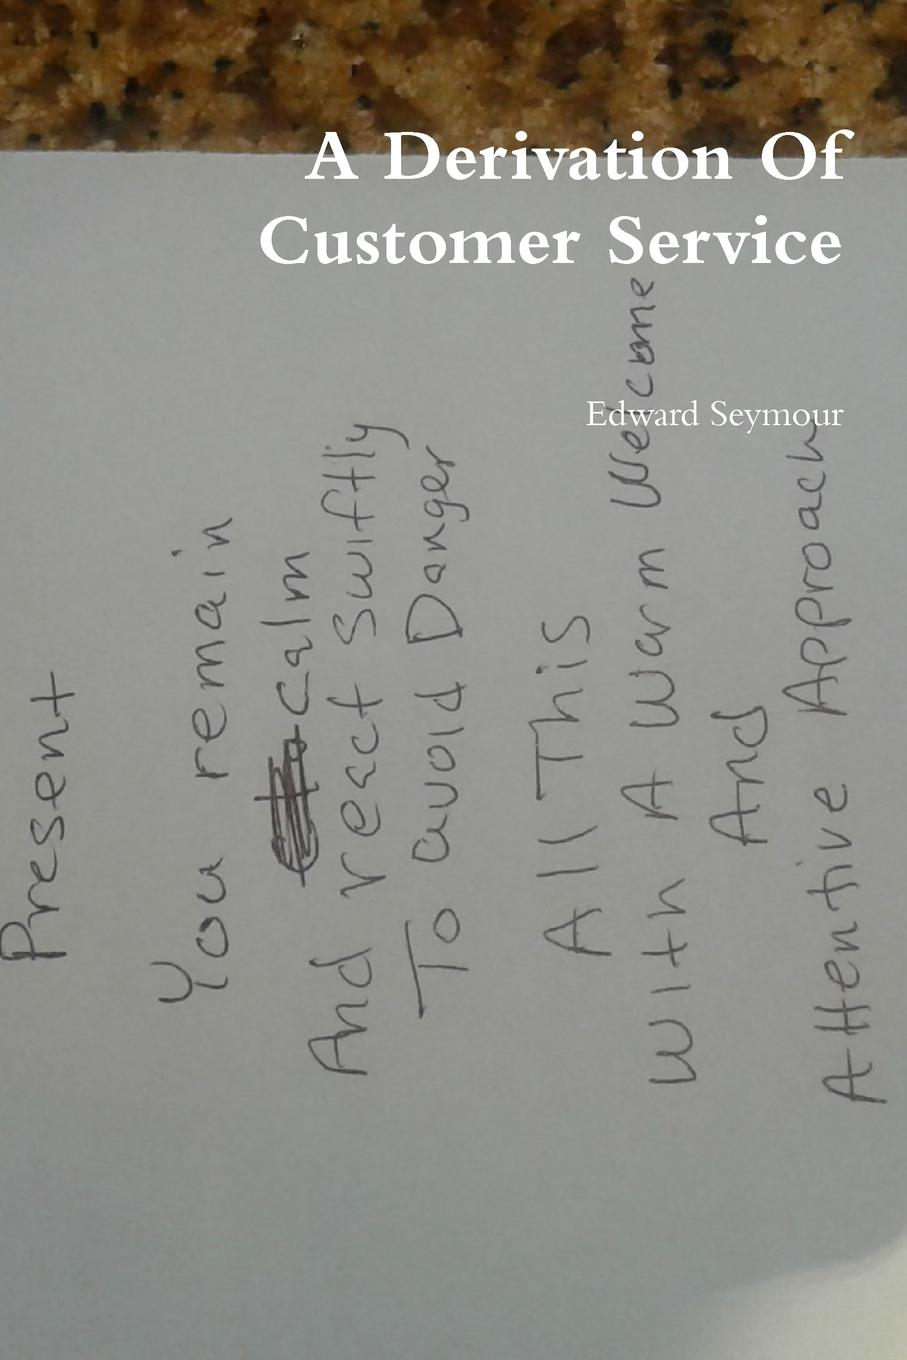 Edward Seymour A Derivation Of Customer Service andrew frawley igniting customer connections fire up your company s growth by multiplying customer experience and engagement